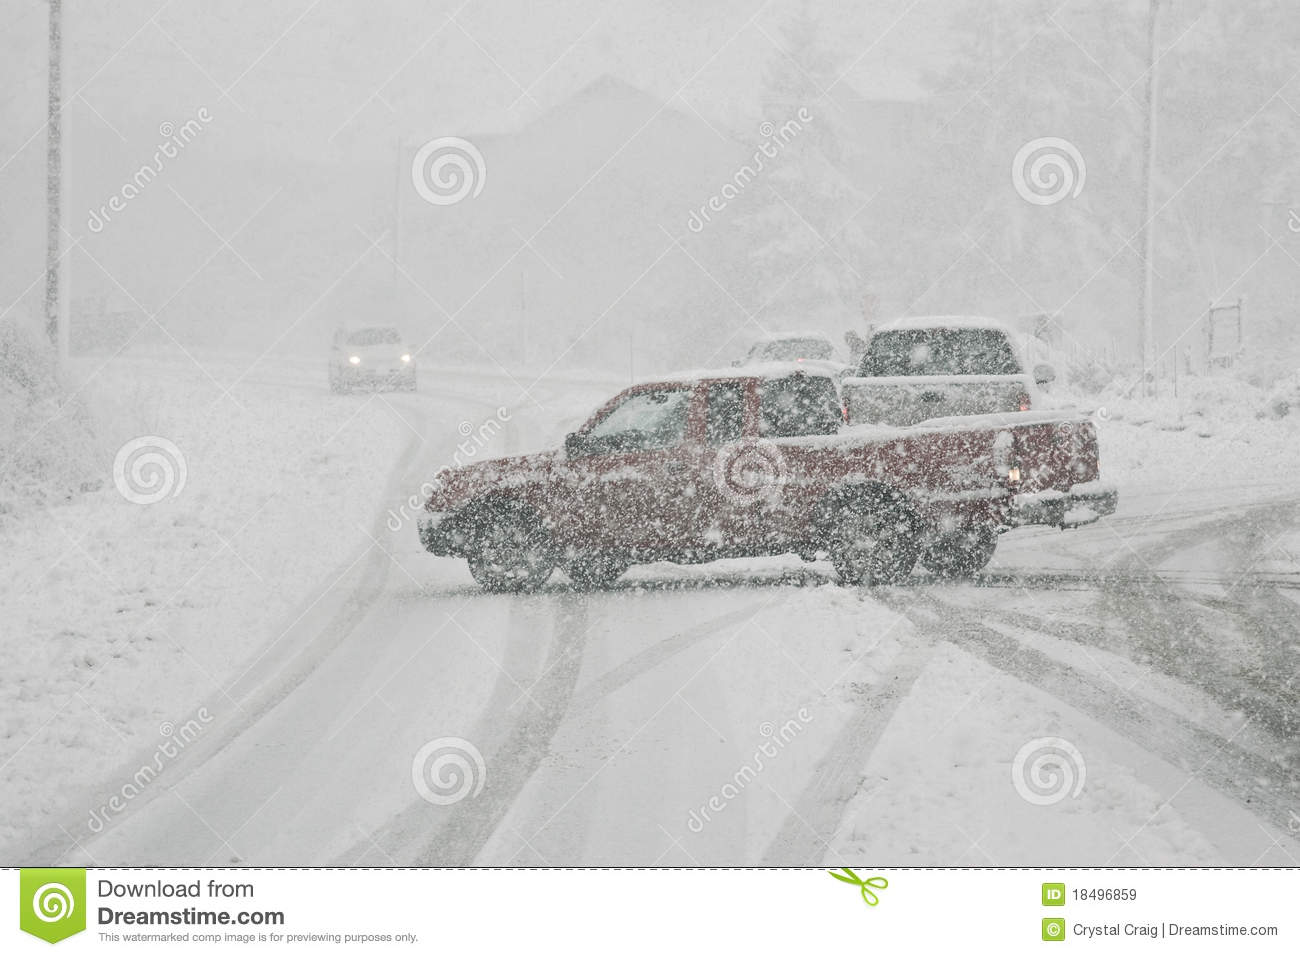 Blocking Traffic in Winter Storm